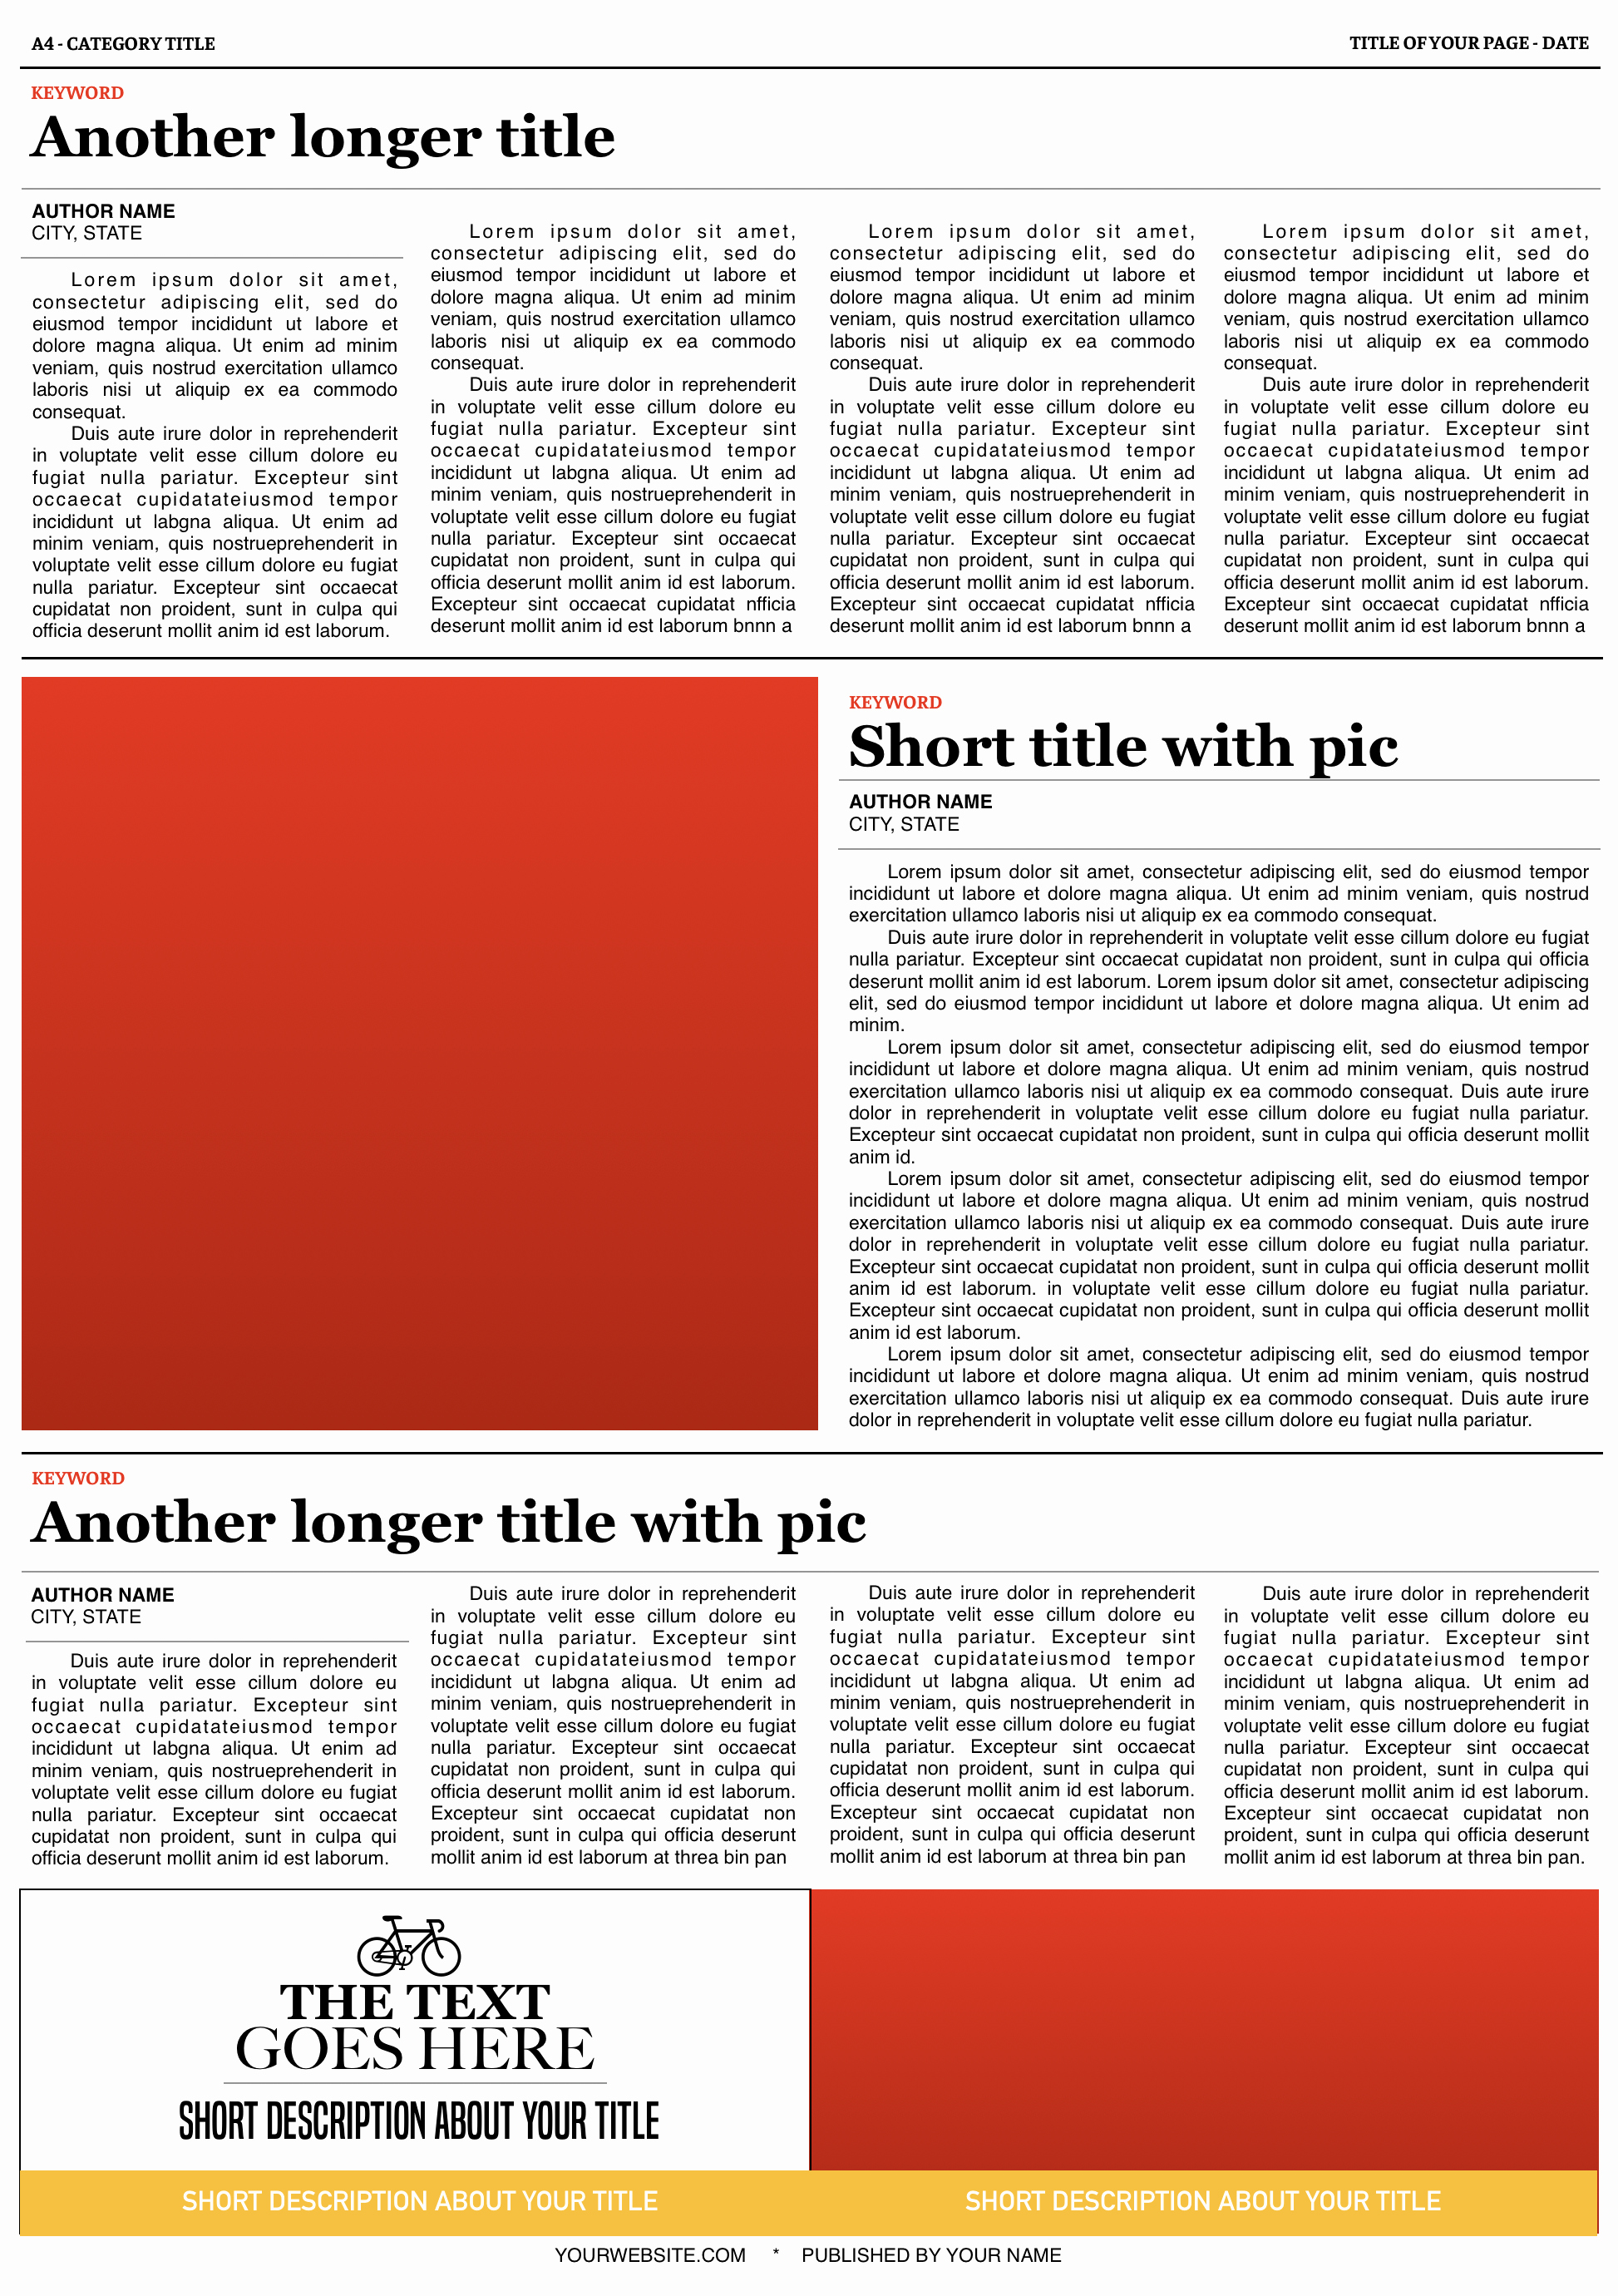 New York Times Newspaper Template Best Of the New York Times Layouts Template Free